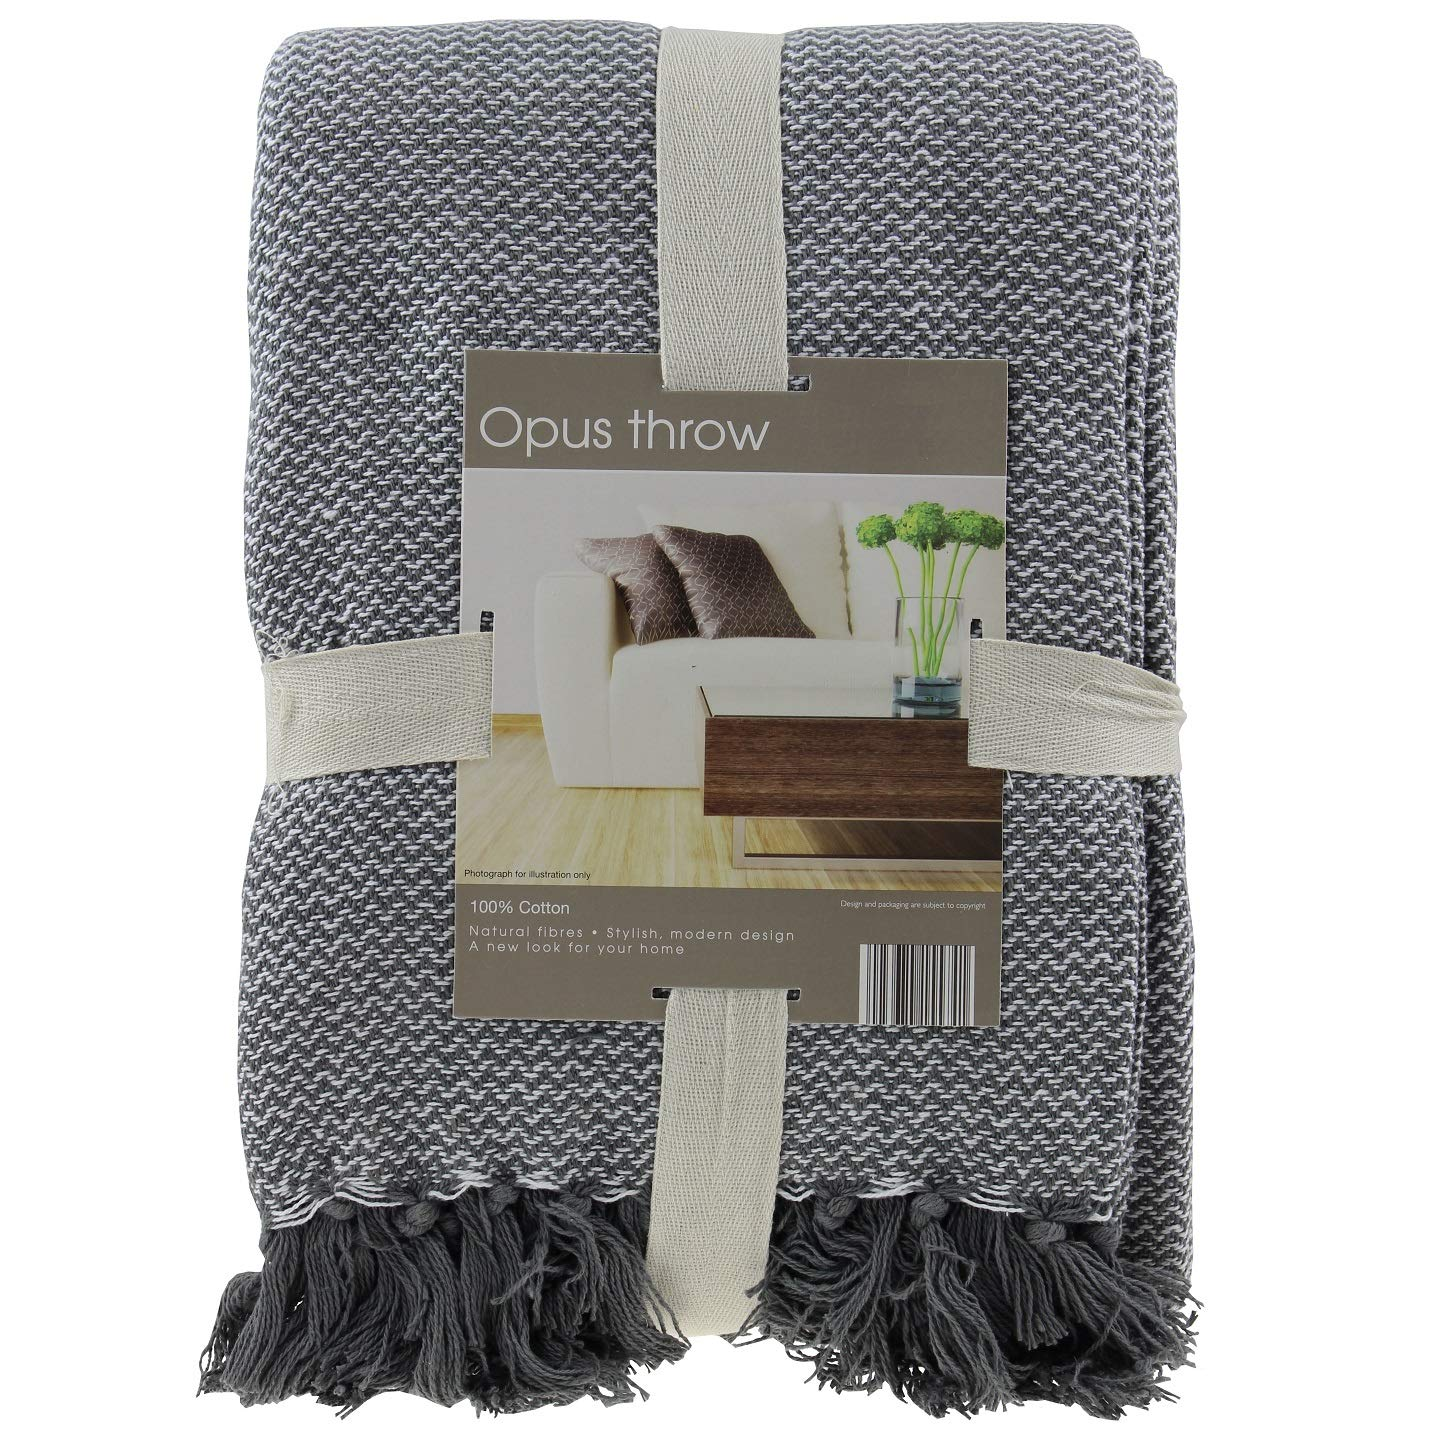 Opus Throw Grey and White Chevron 127cm x 152cm 100/% Cotton cover